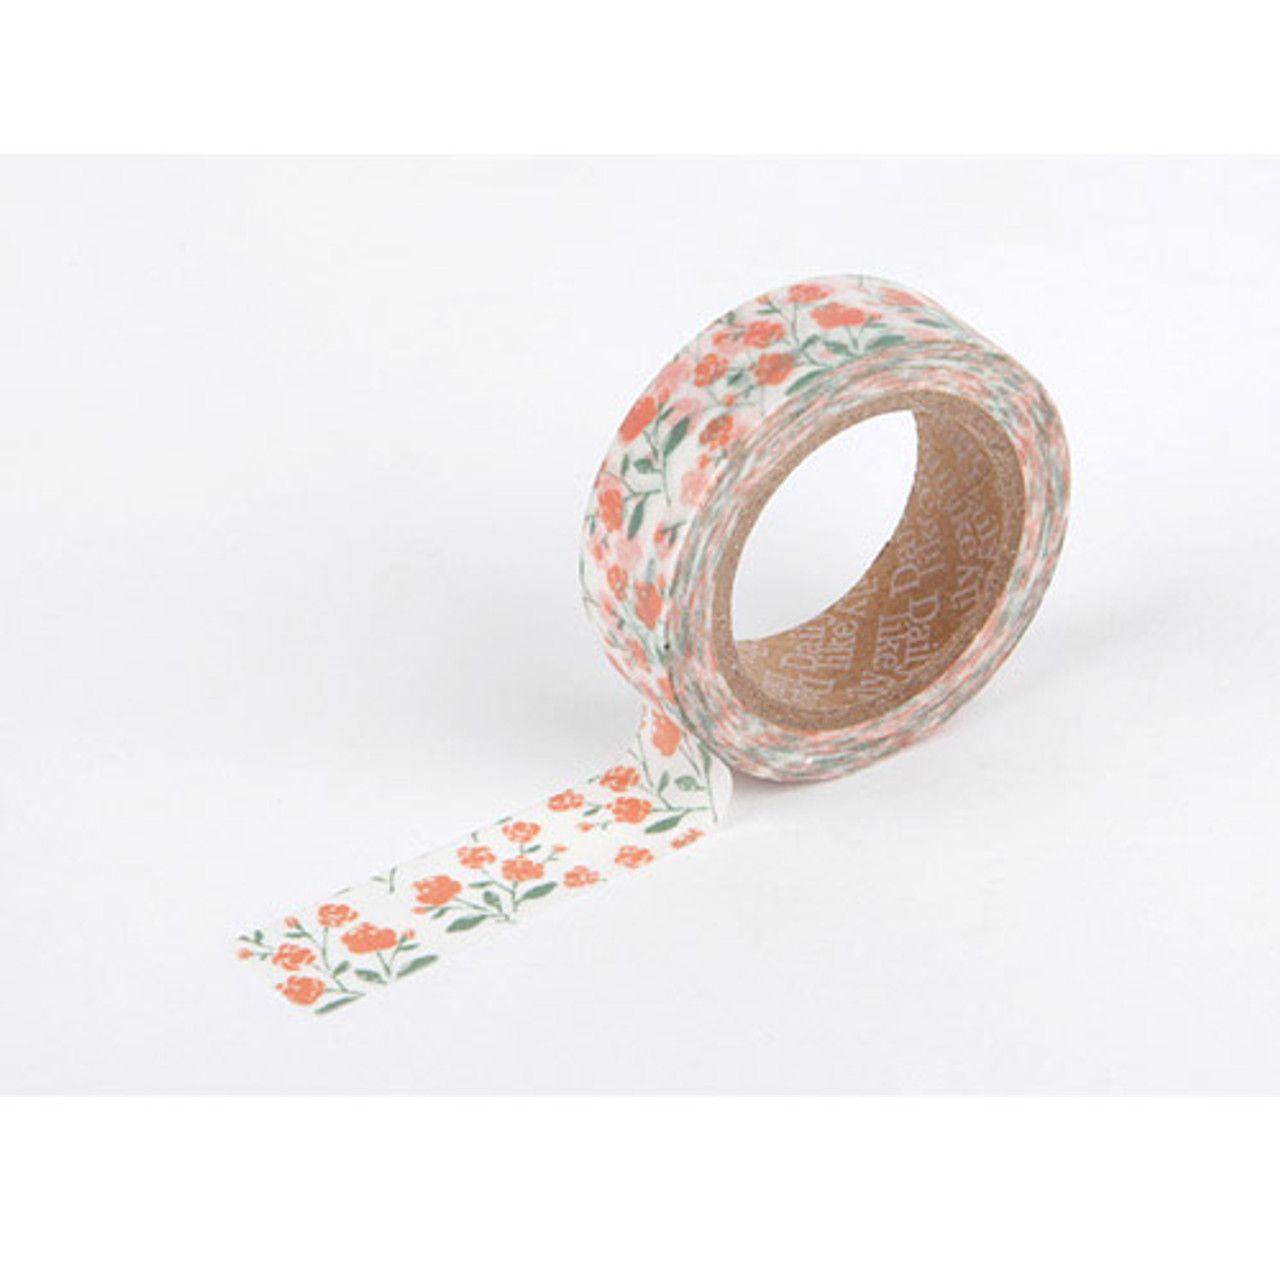 dailylike deco masking tape single rose garden. Black Bedroom Furniture Sets. Home Design Ideas